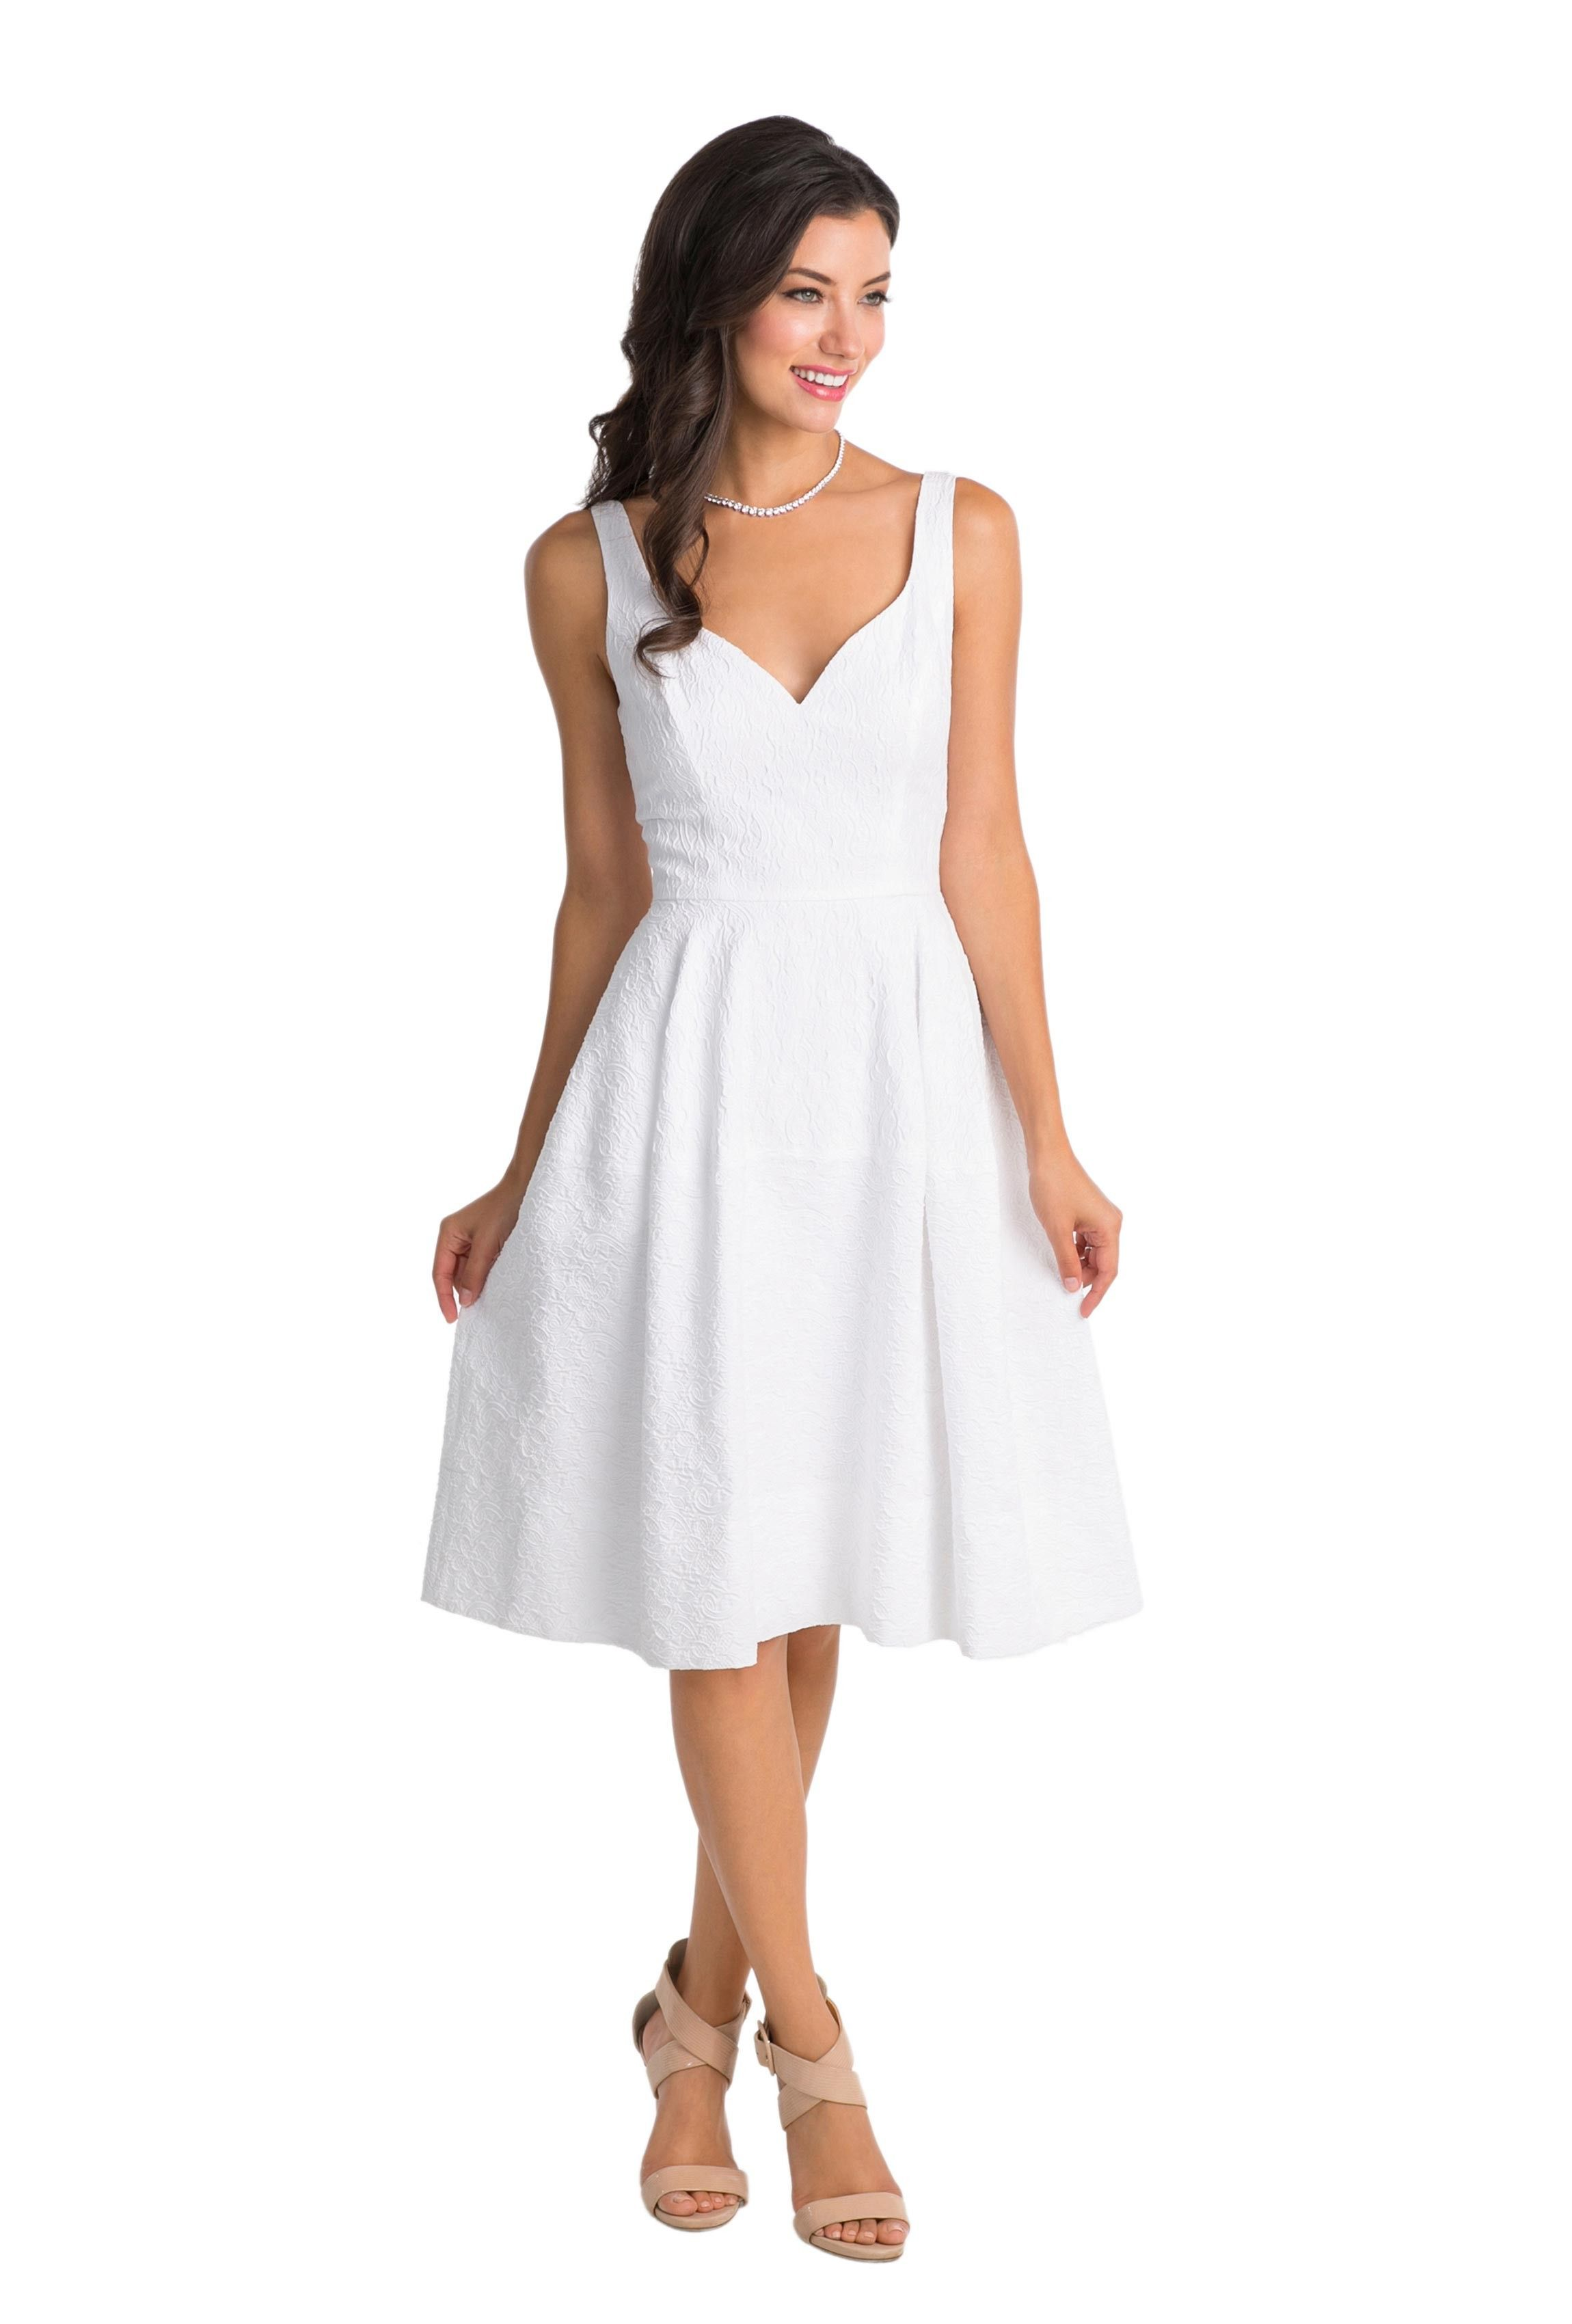 Where can i rent a wedding dress  A short white sweetheart aline dress for a short casual wedding or